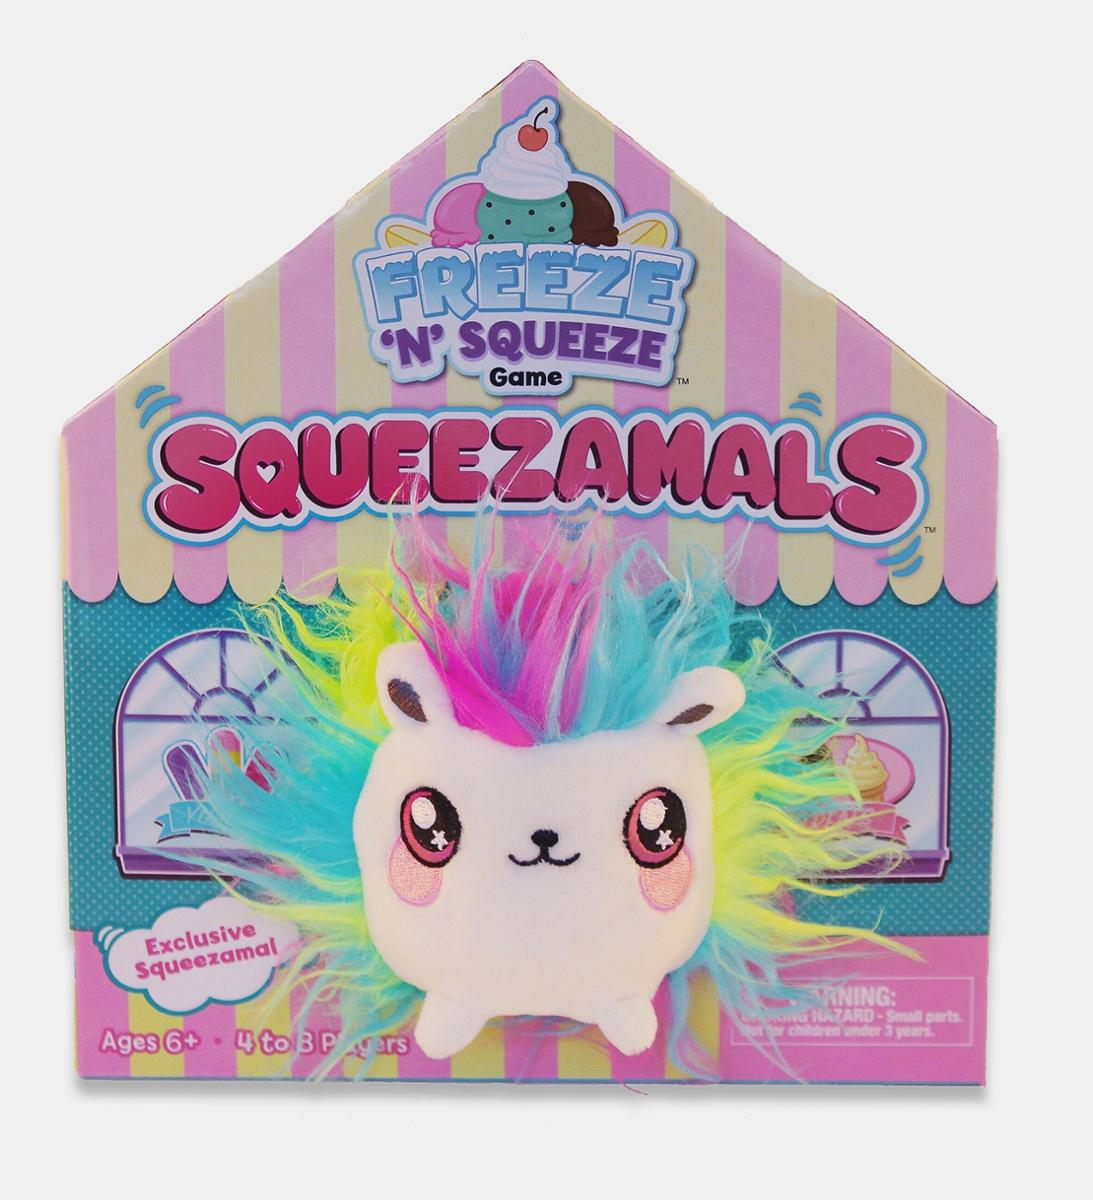 Squeezamals Freeze N Squeeze Childrens Game